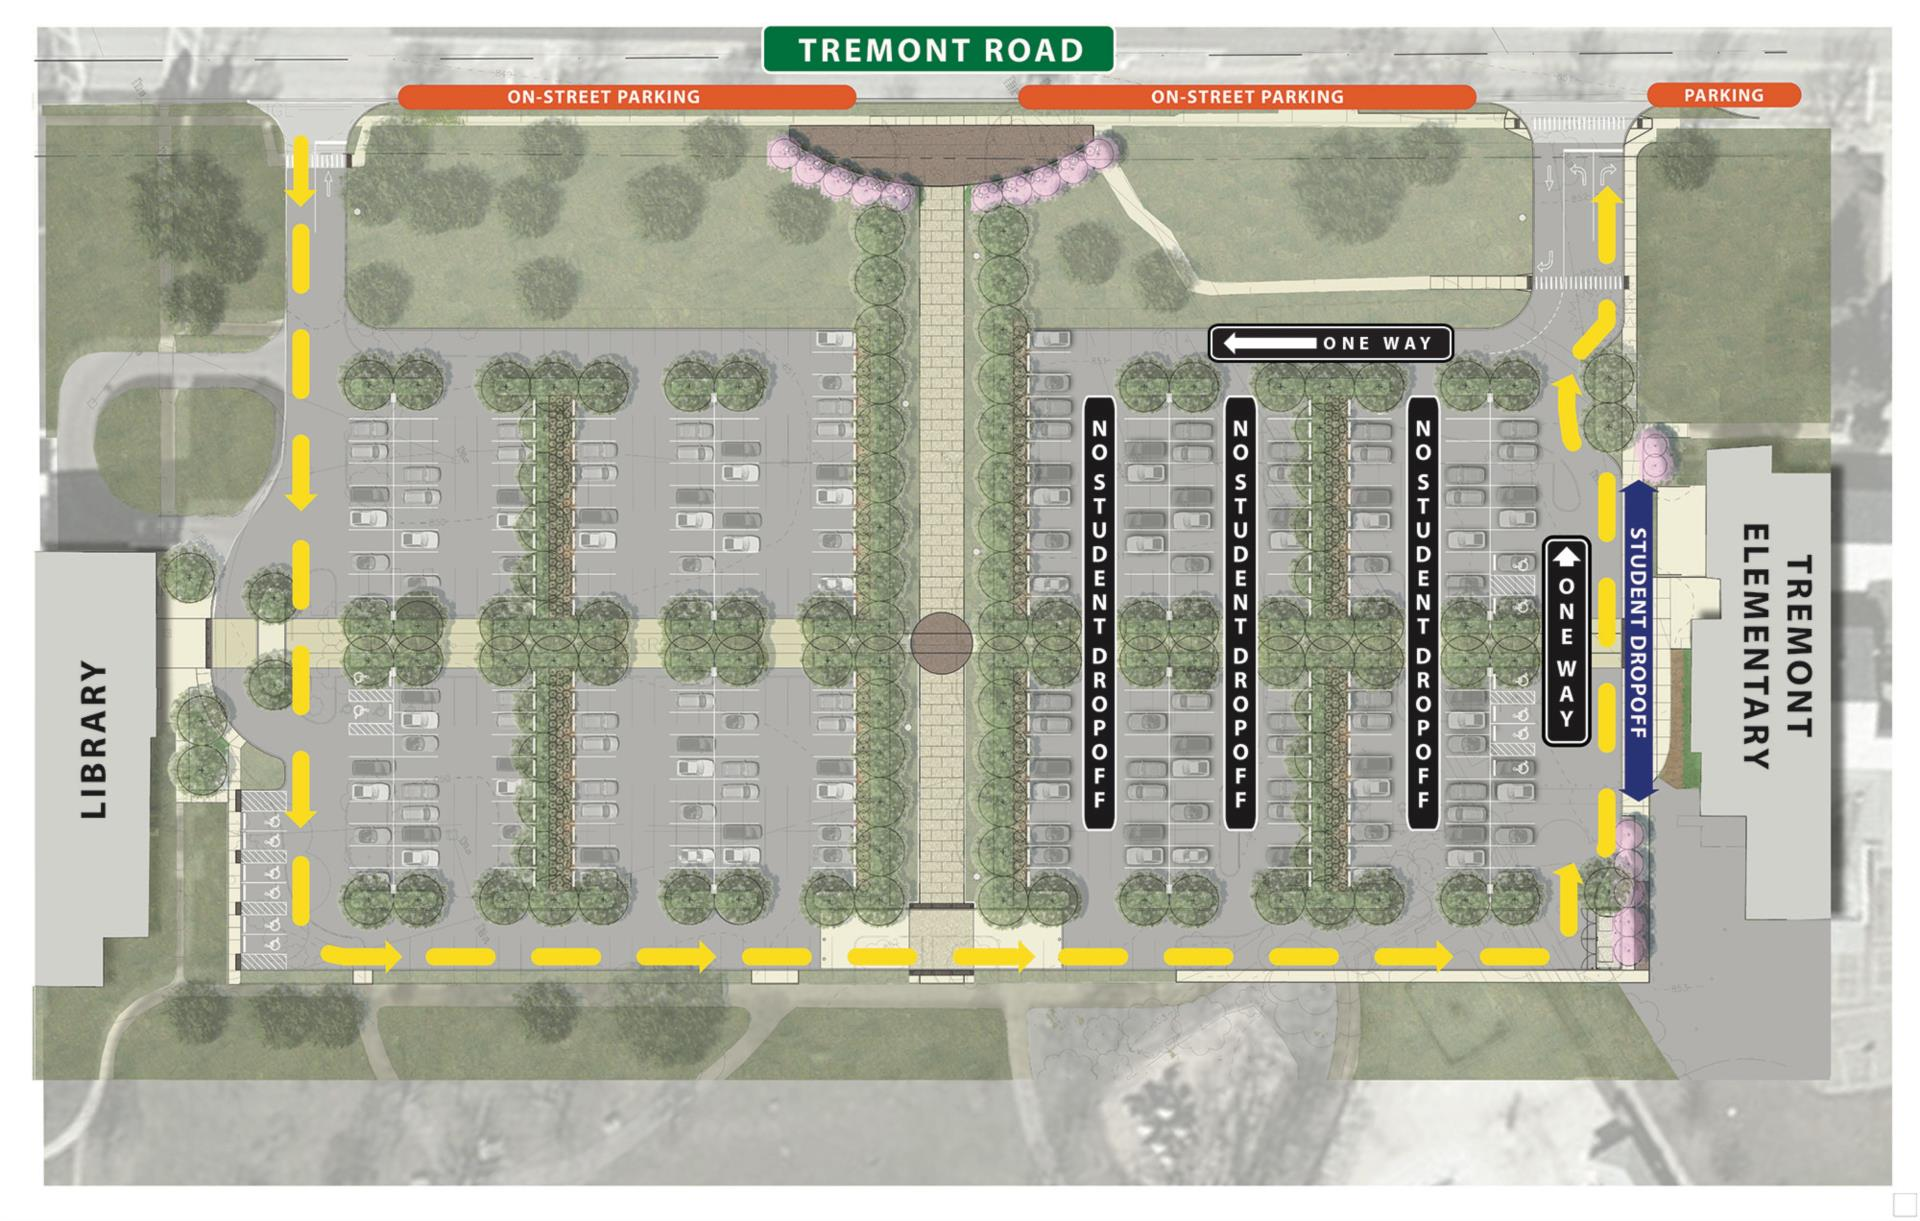 Tremont parking lot map